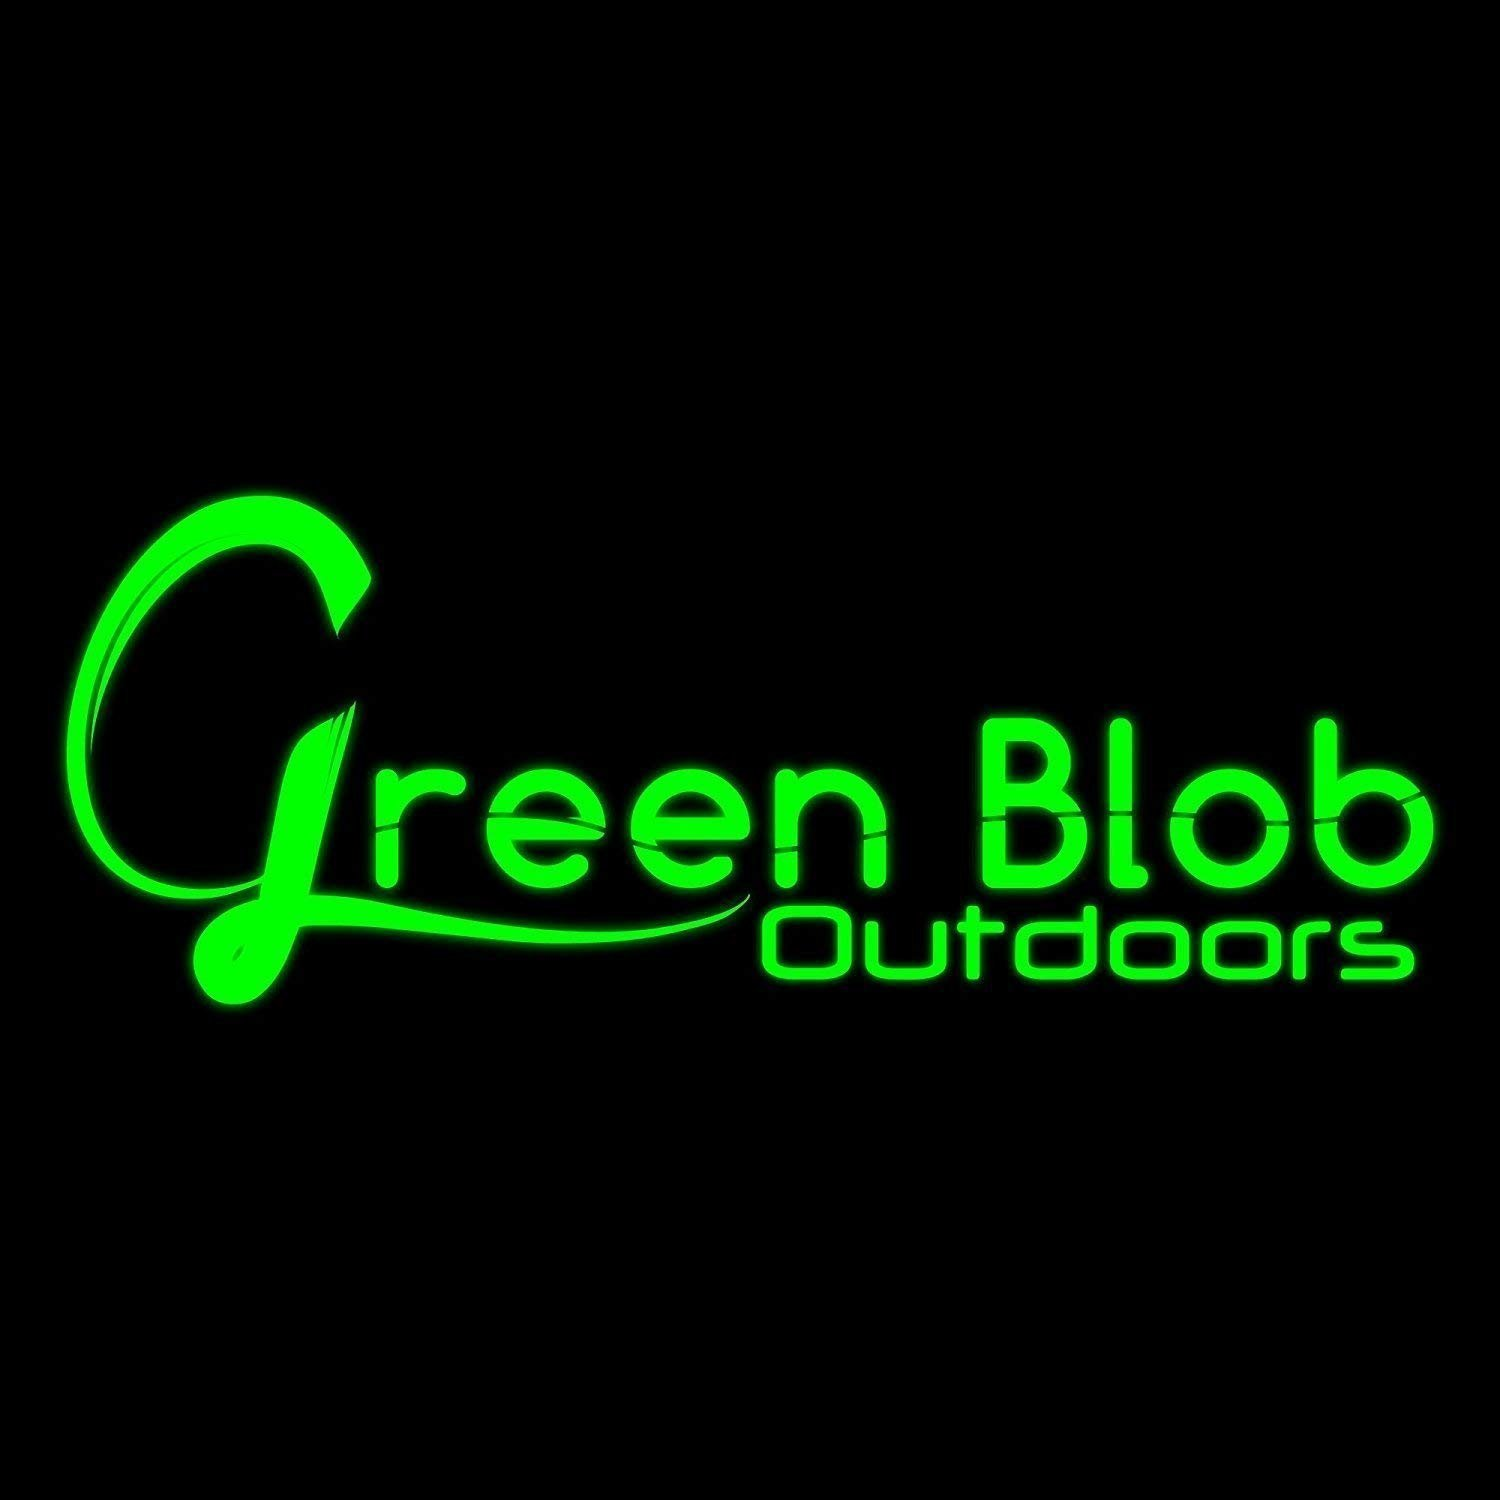 Green Blob Outdoors White Dock 15000 Lumen Underwater 110 Volt AC with 3 Prong Plug, Fishing Light LED Fish Finding System Light with 30ft Power Cord, Bait rig, Fish attractant, Ponds, Squid (White) by Green Blob Outdoors